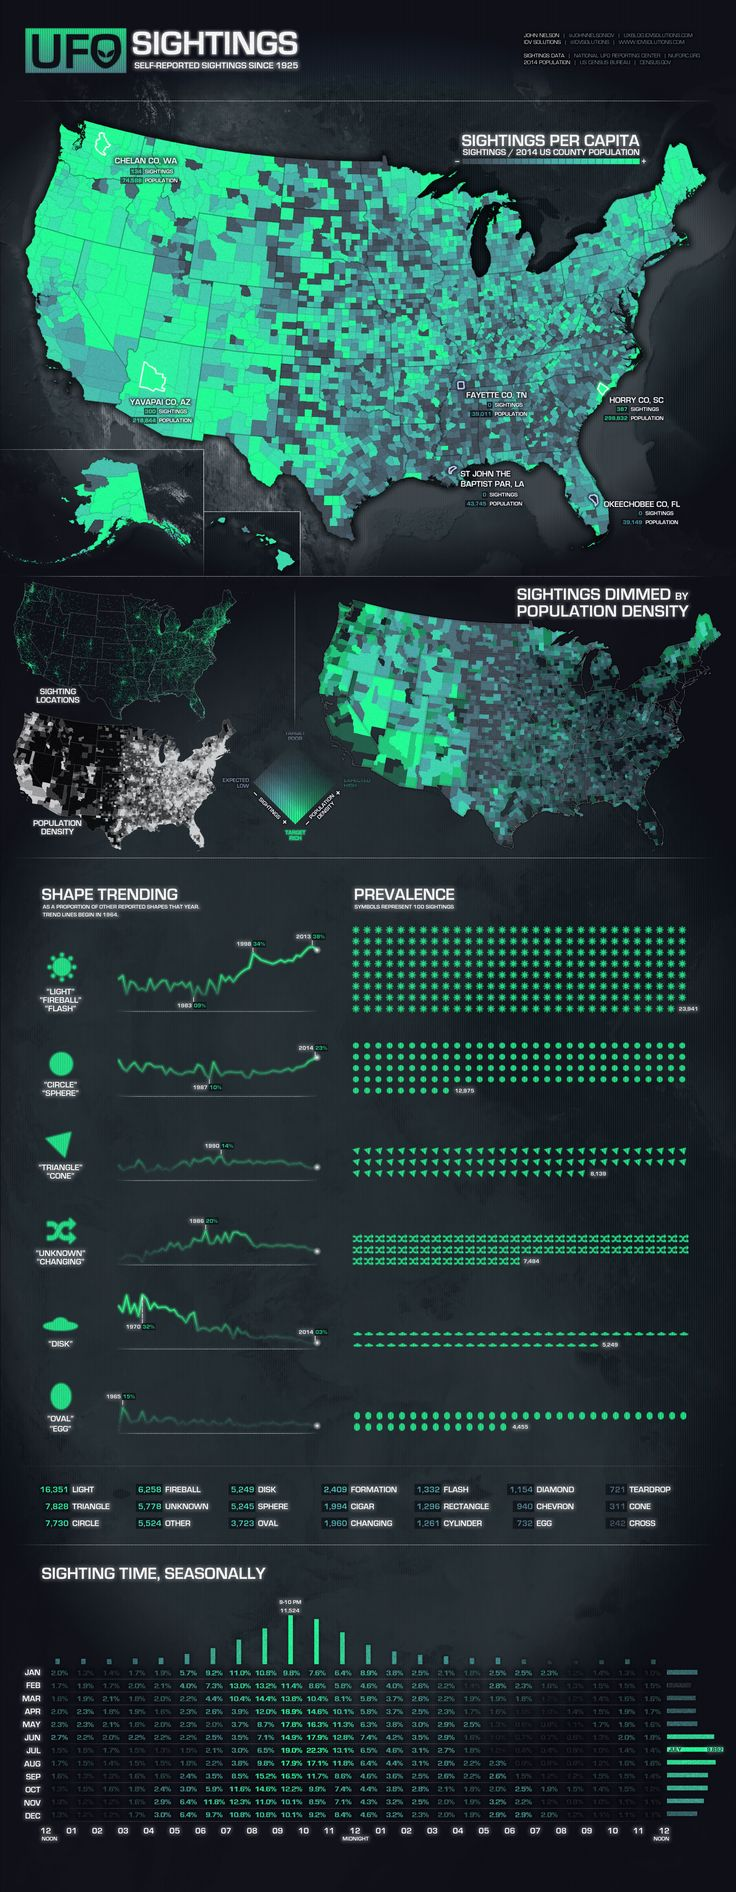 Every Reported UFO Sighting in the U.S. Since 1925 | Daily Infographic